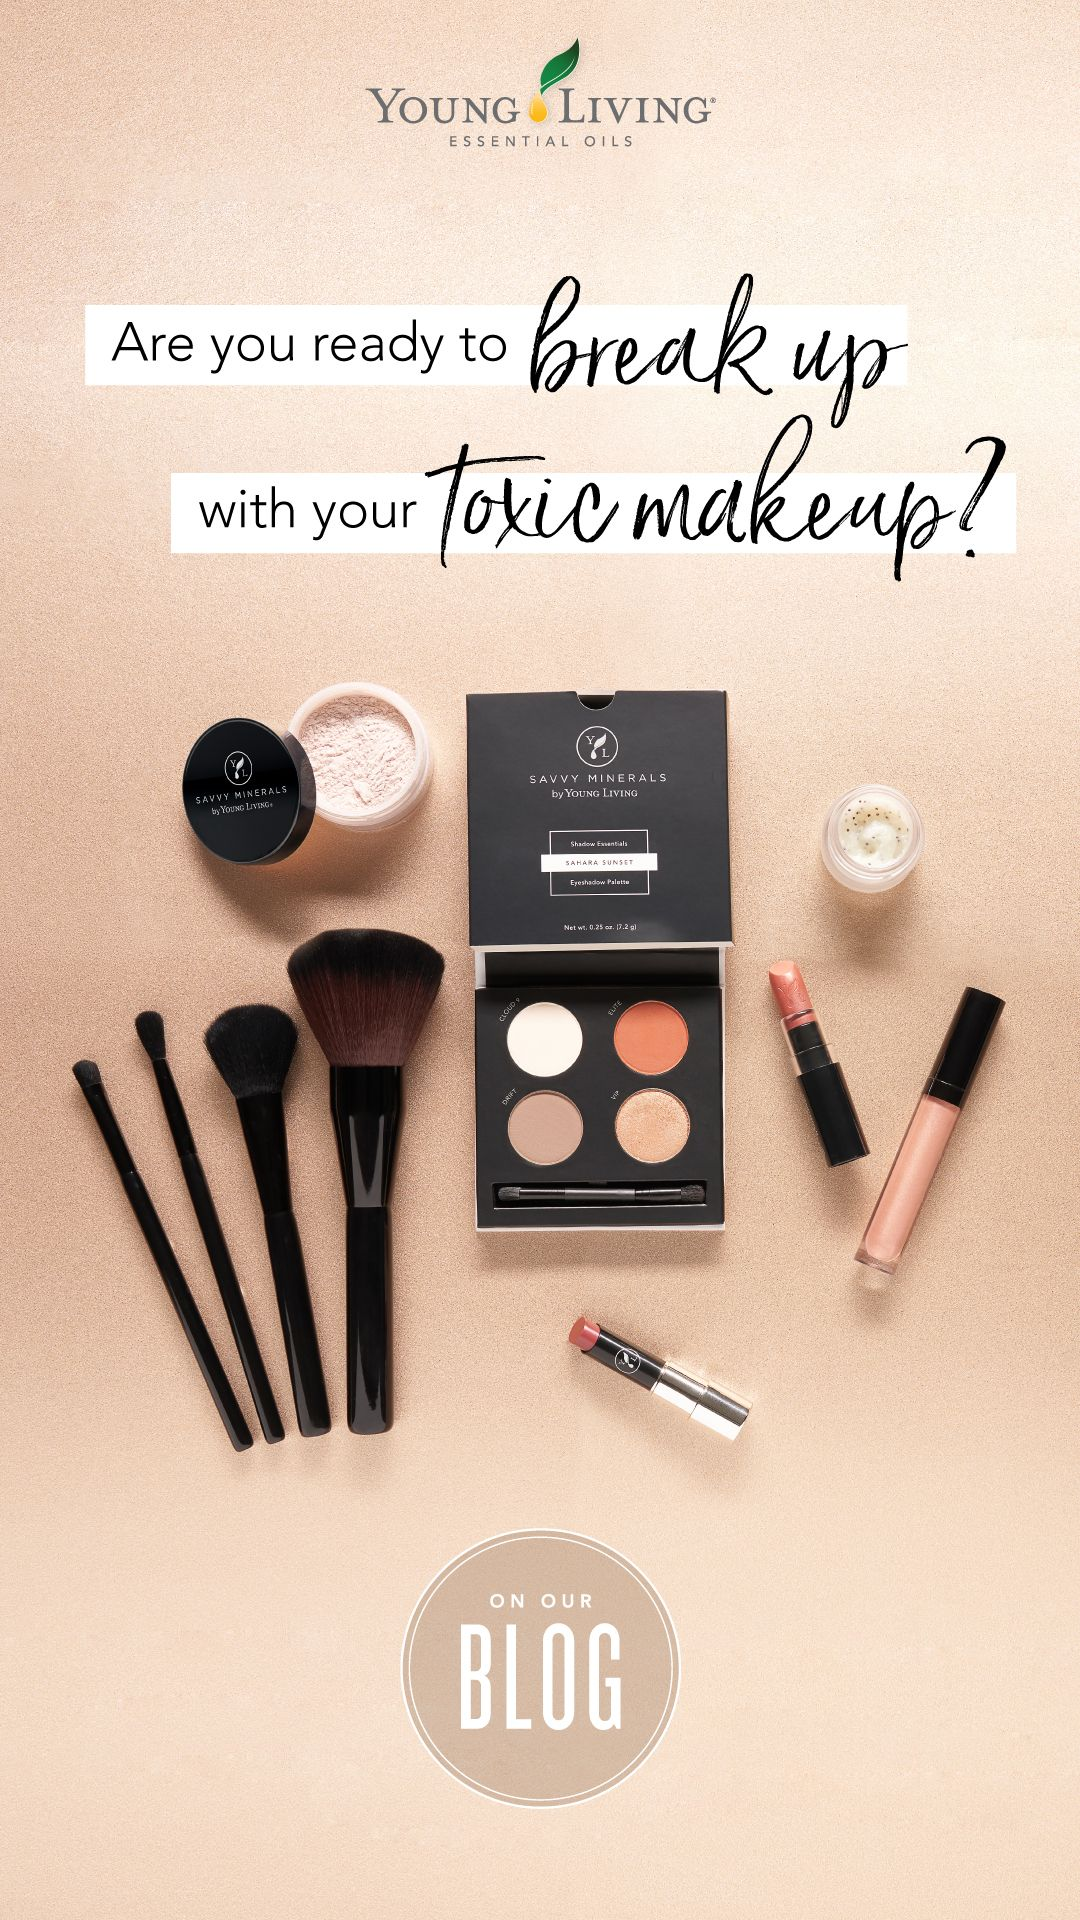 Are you ready to break up with your toxic makeup? Savvy